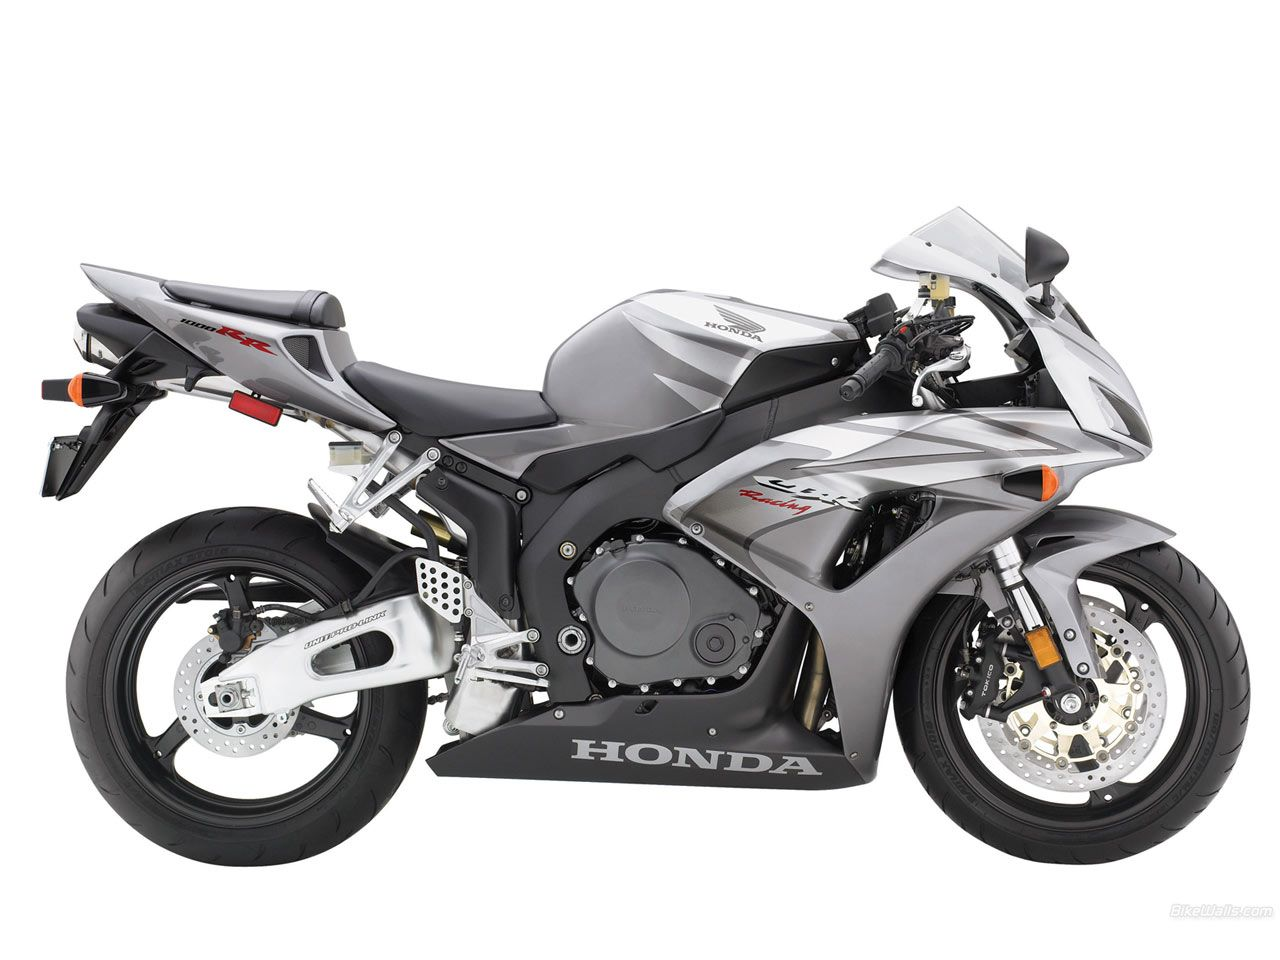 Honda cbr1000rr 1280 x 960 wallpaper